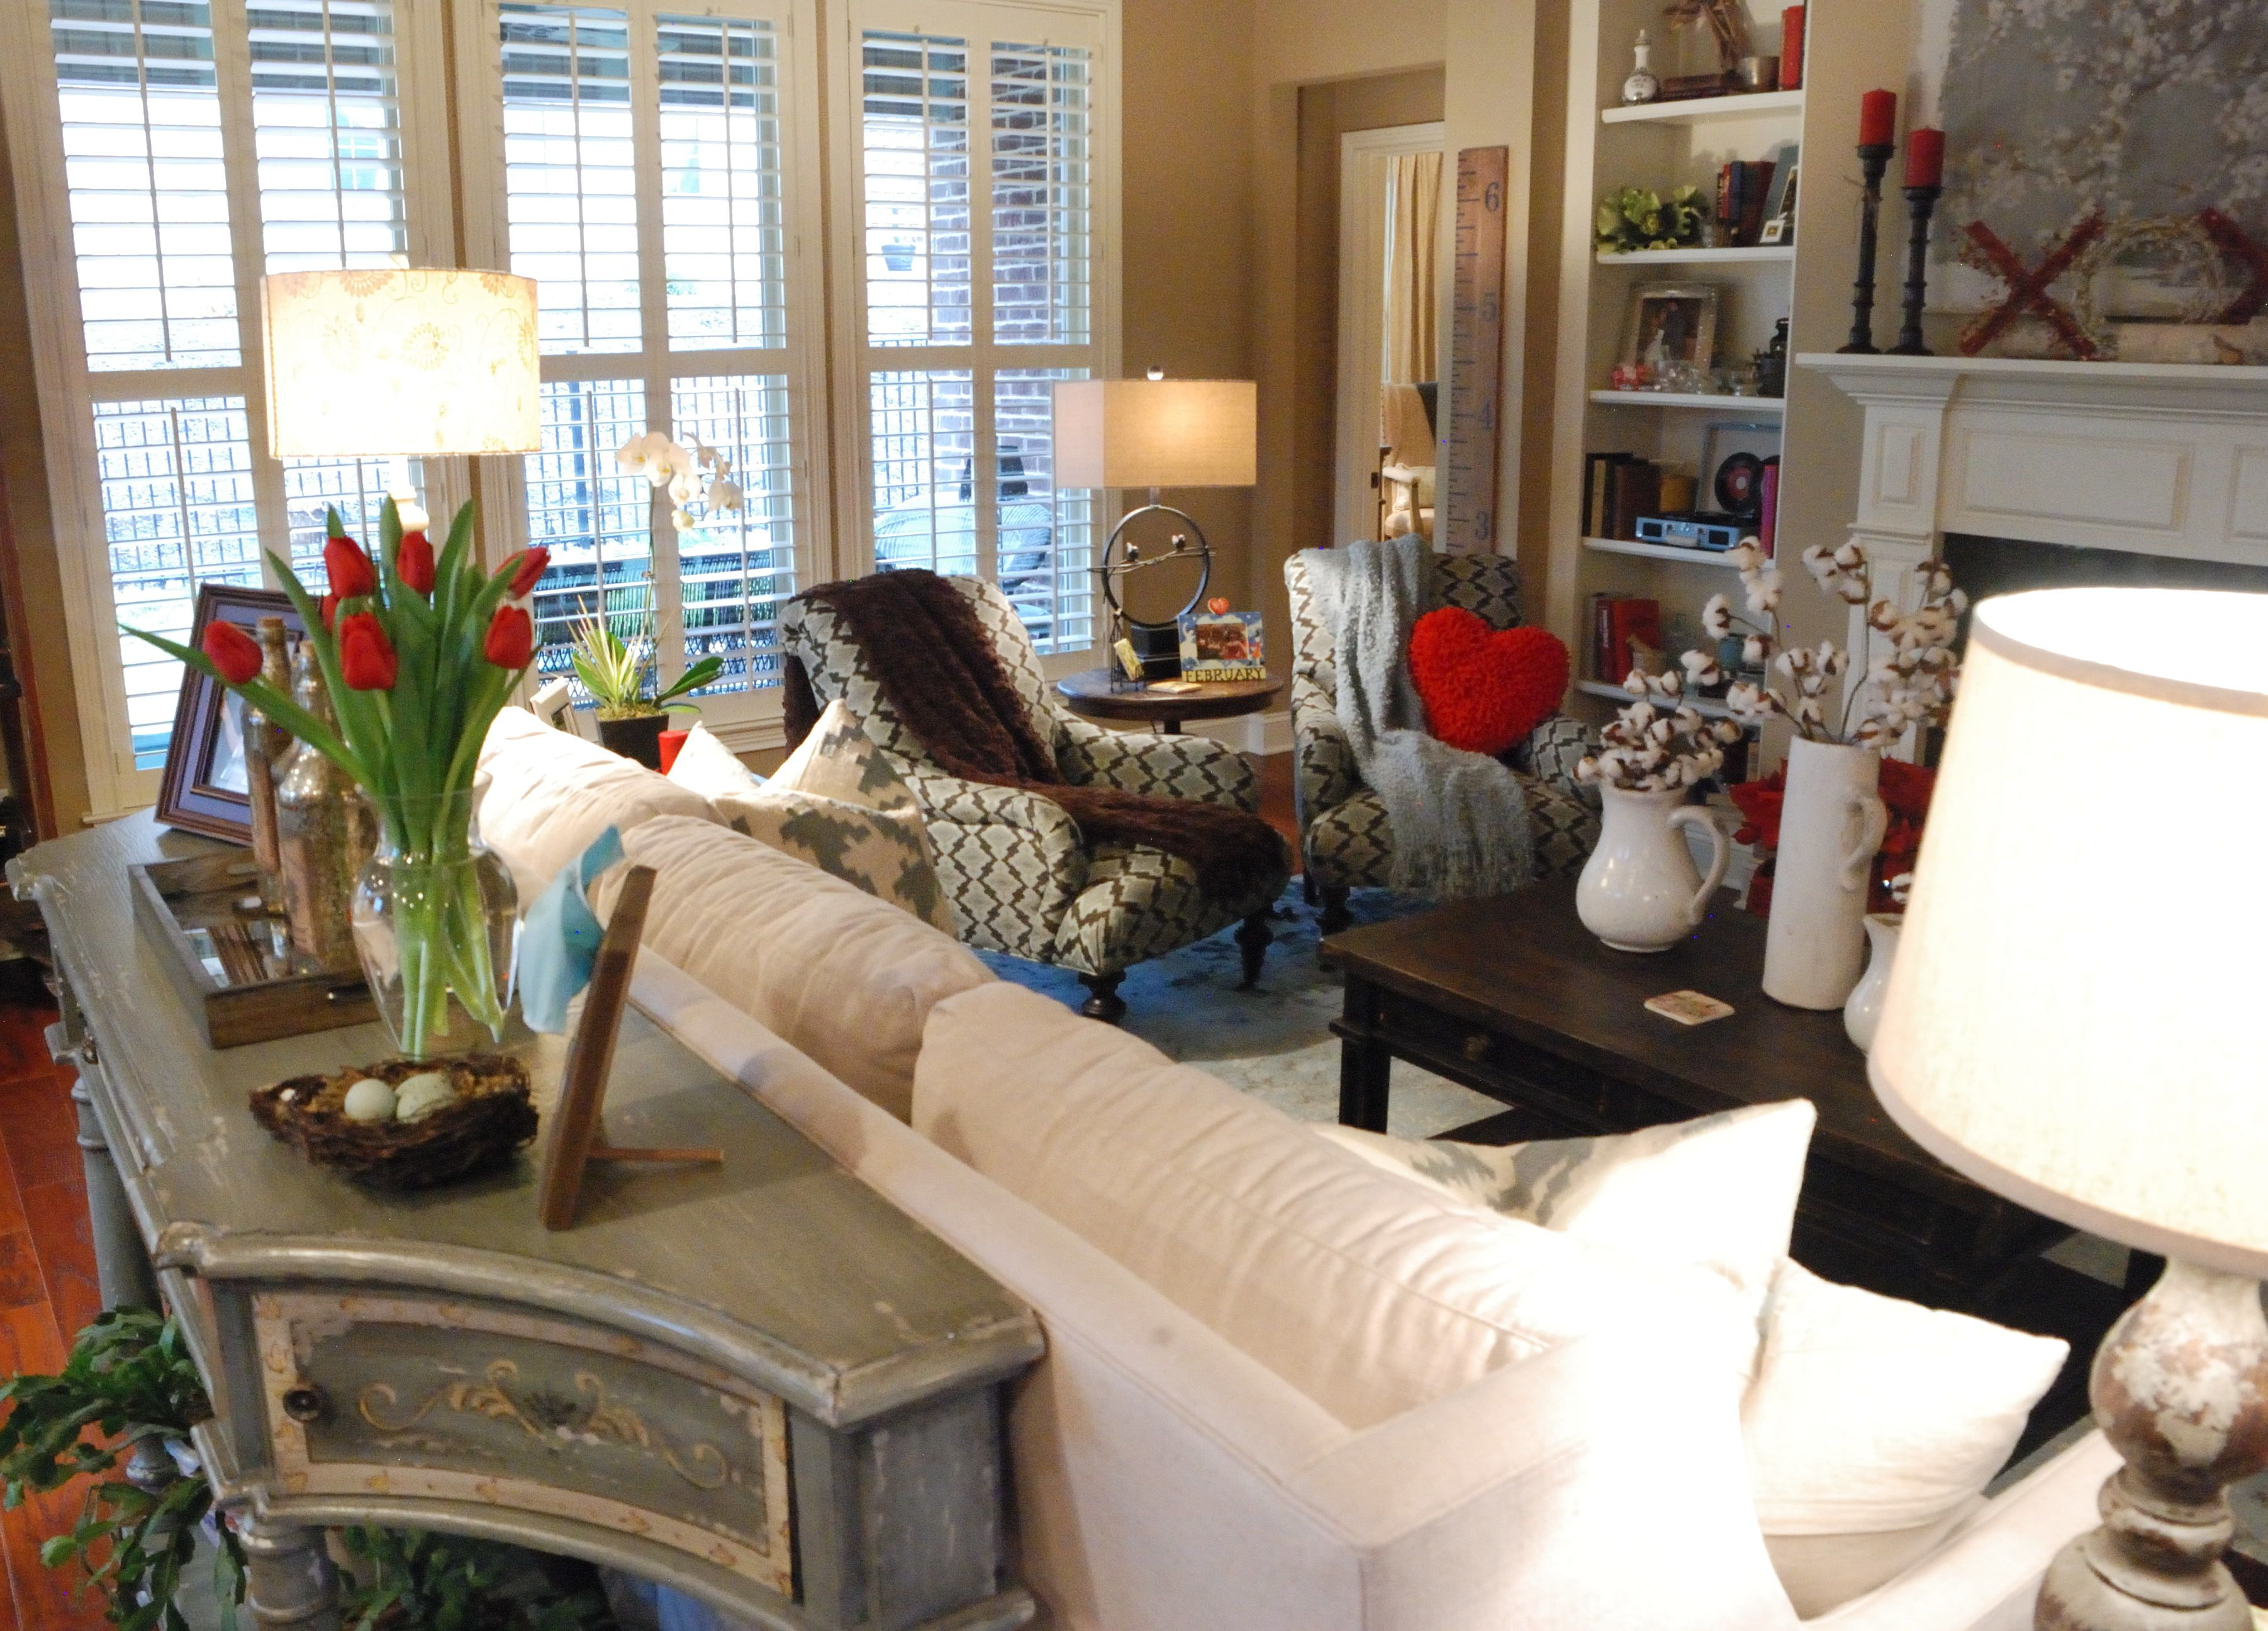 Living Room Furniture Knoxville Tn knoxville home tour - designsbychrisjnorris